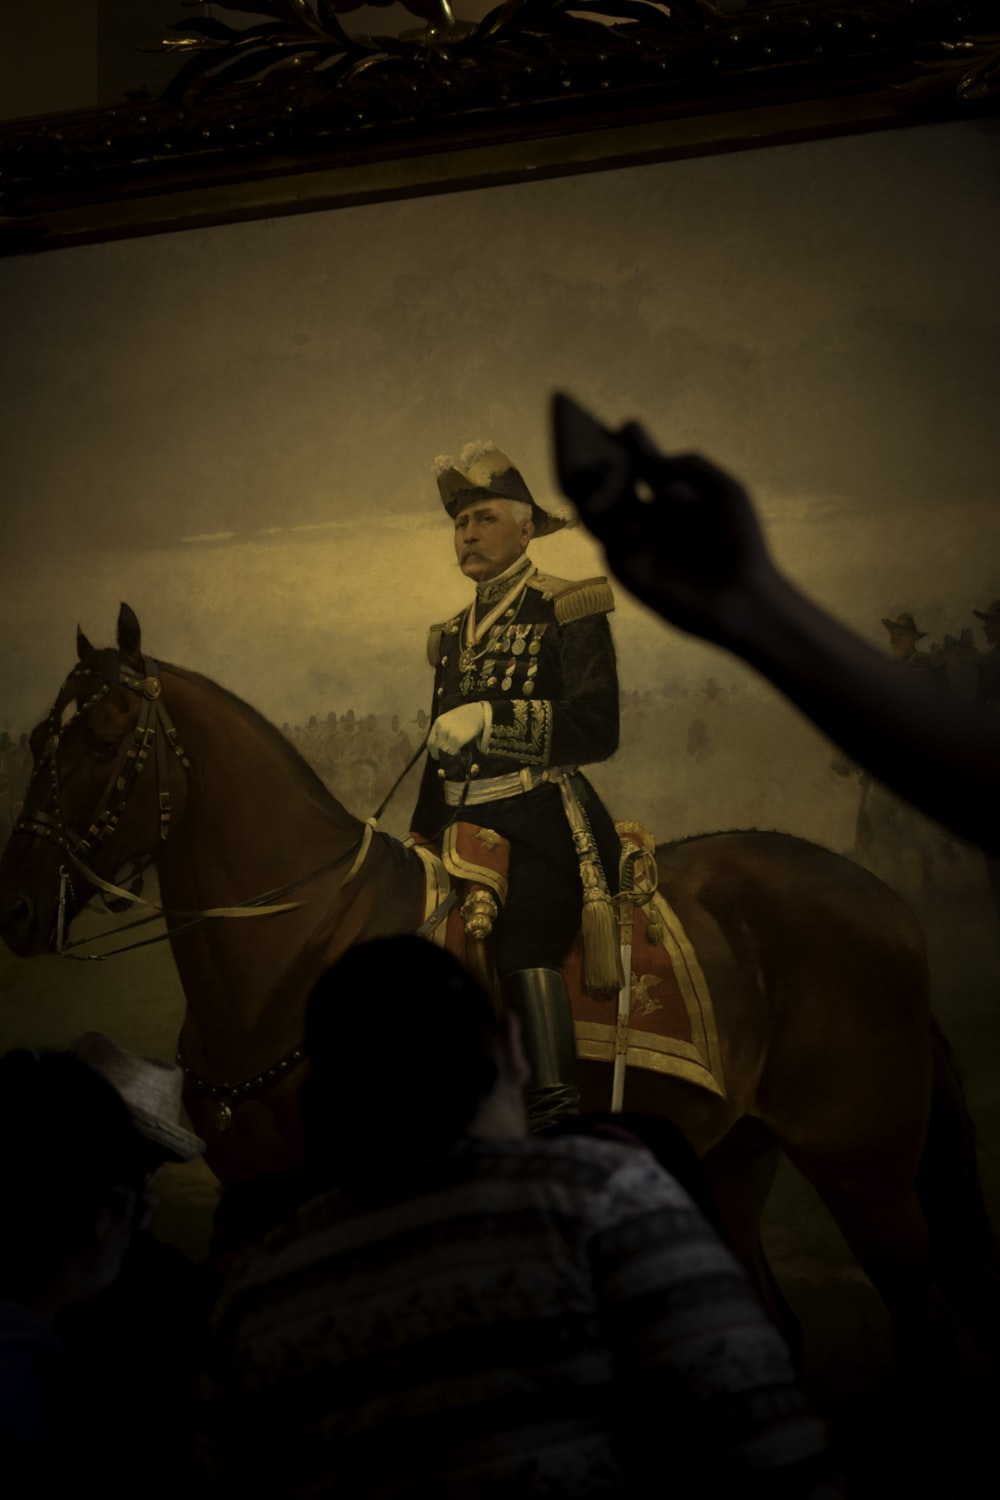 person looking at man in military uniform riding horse painting